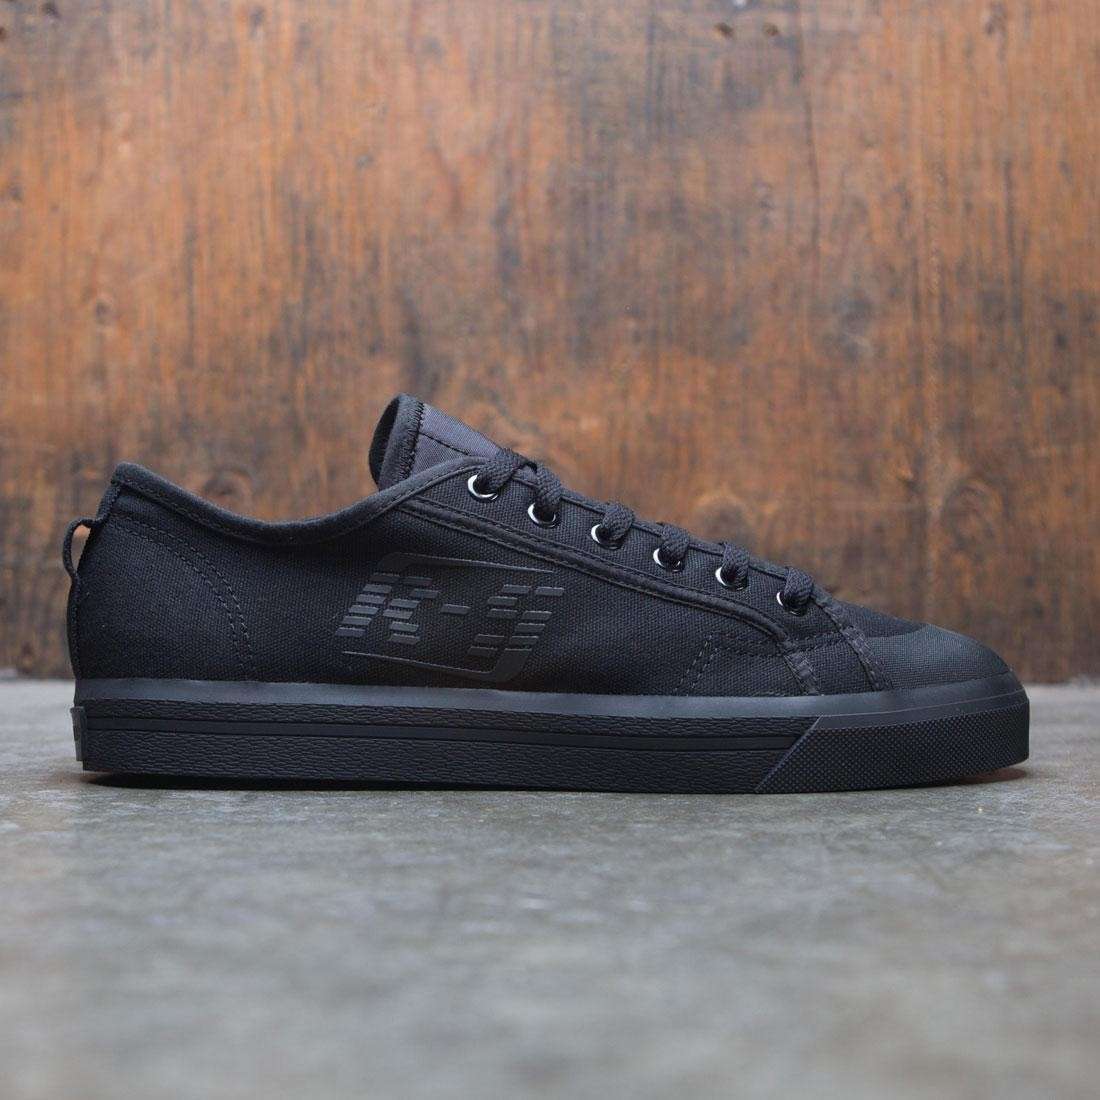 72697537eb694 Adidas x Raf Simons Men Spirit Low Asymm Tongue black core black pantone